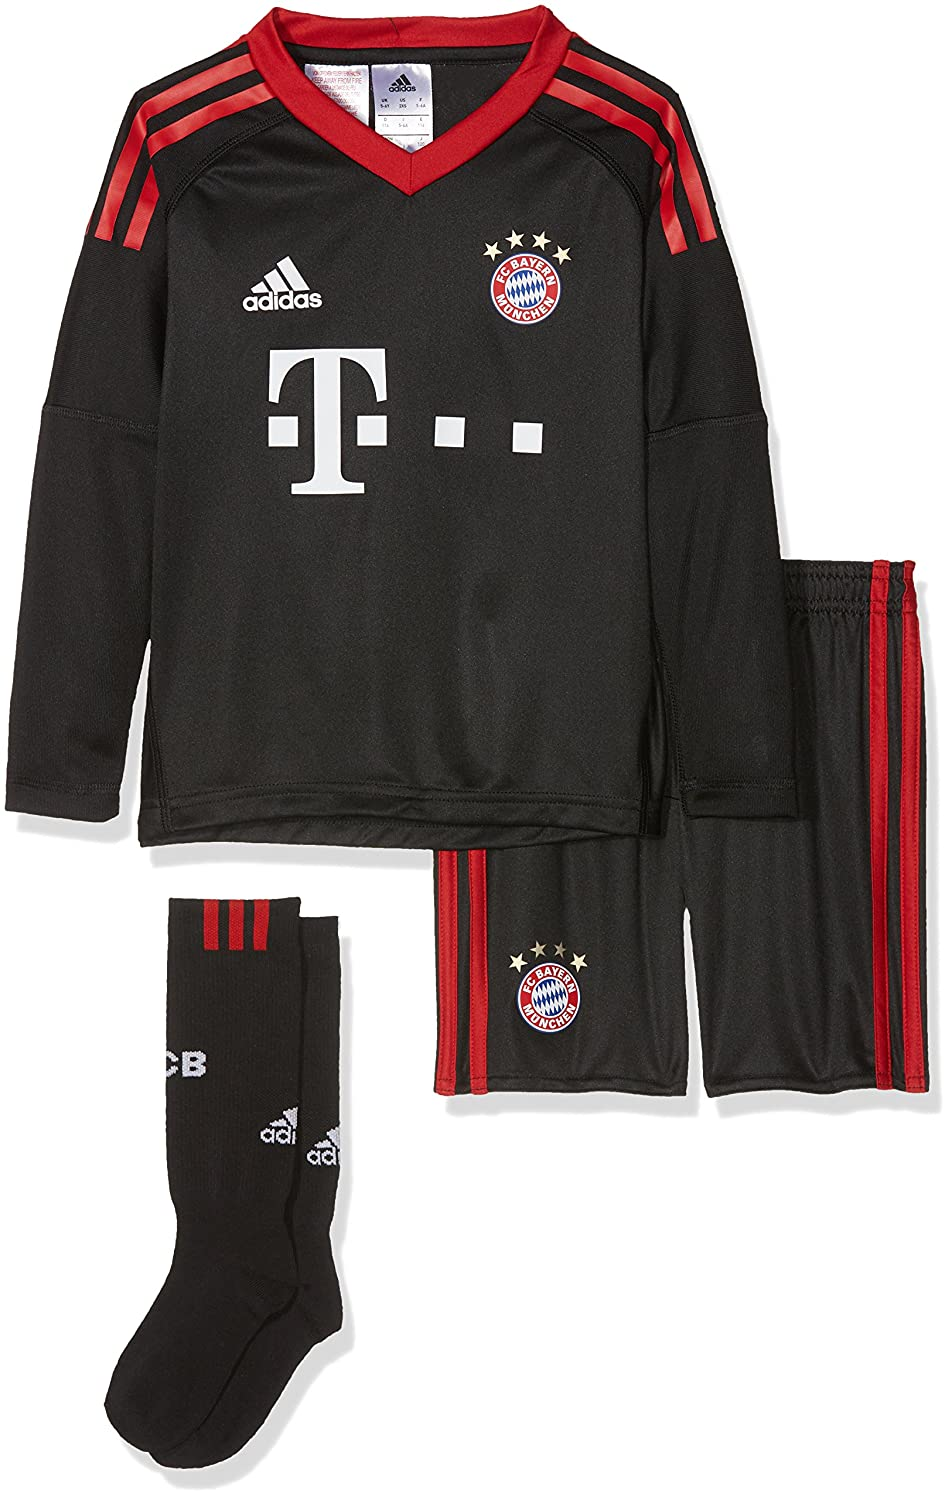 2017-2018 Bayern Munich Adidas Home Goalkeeper Mini Kit B06ZYS3M8RBlack 4-5 Years